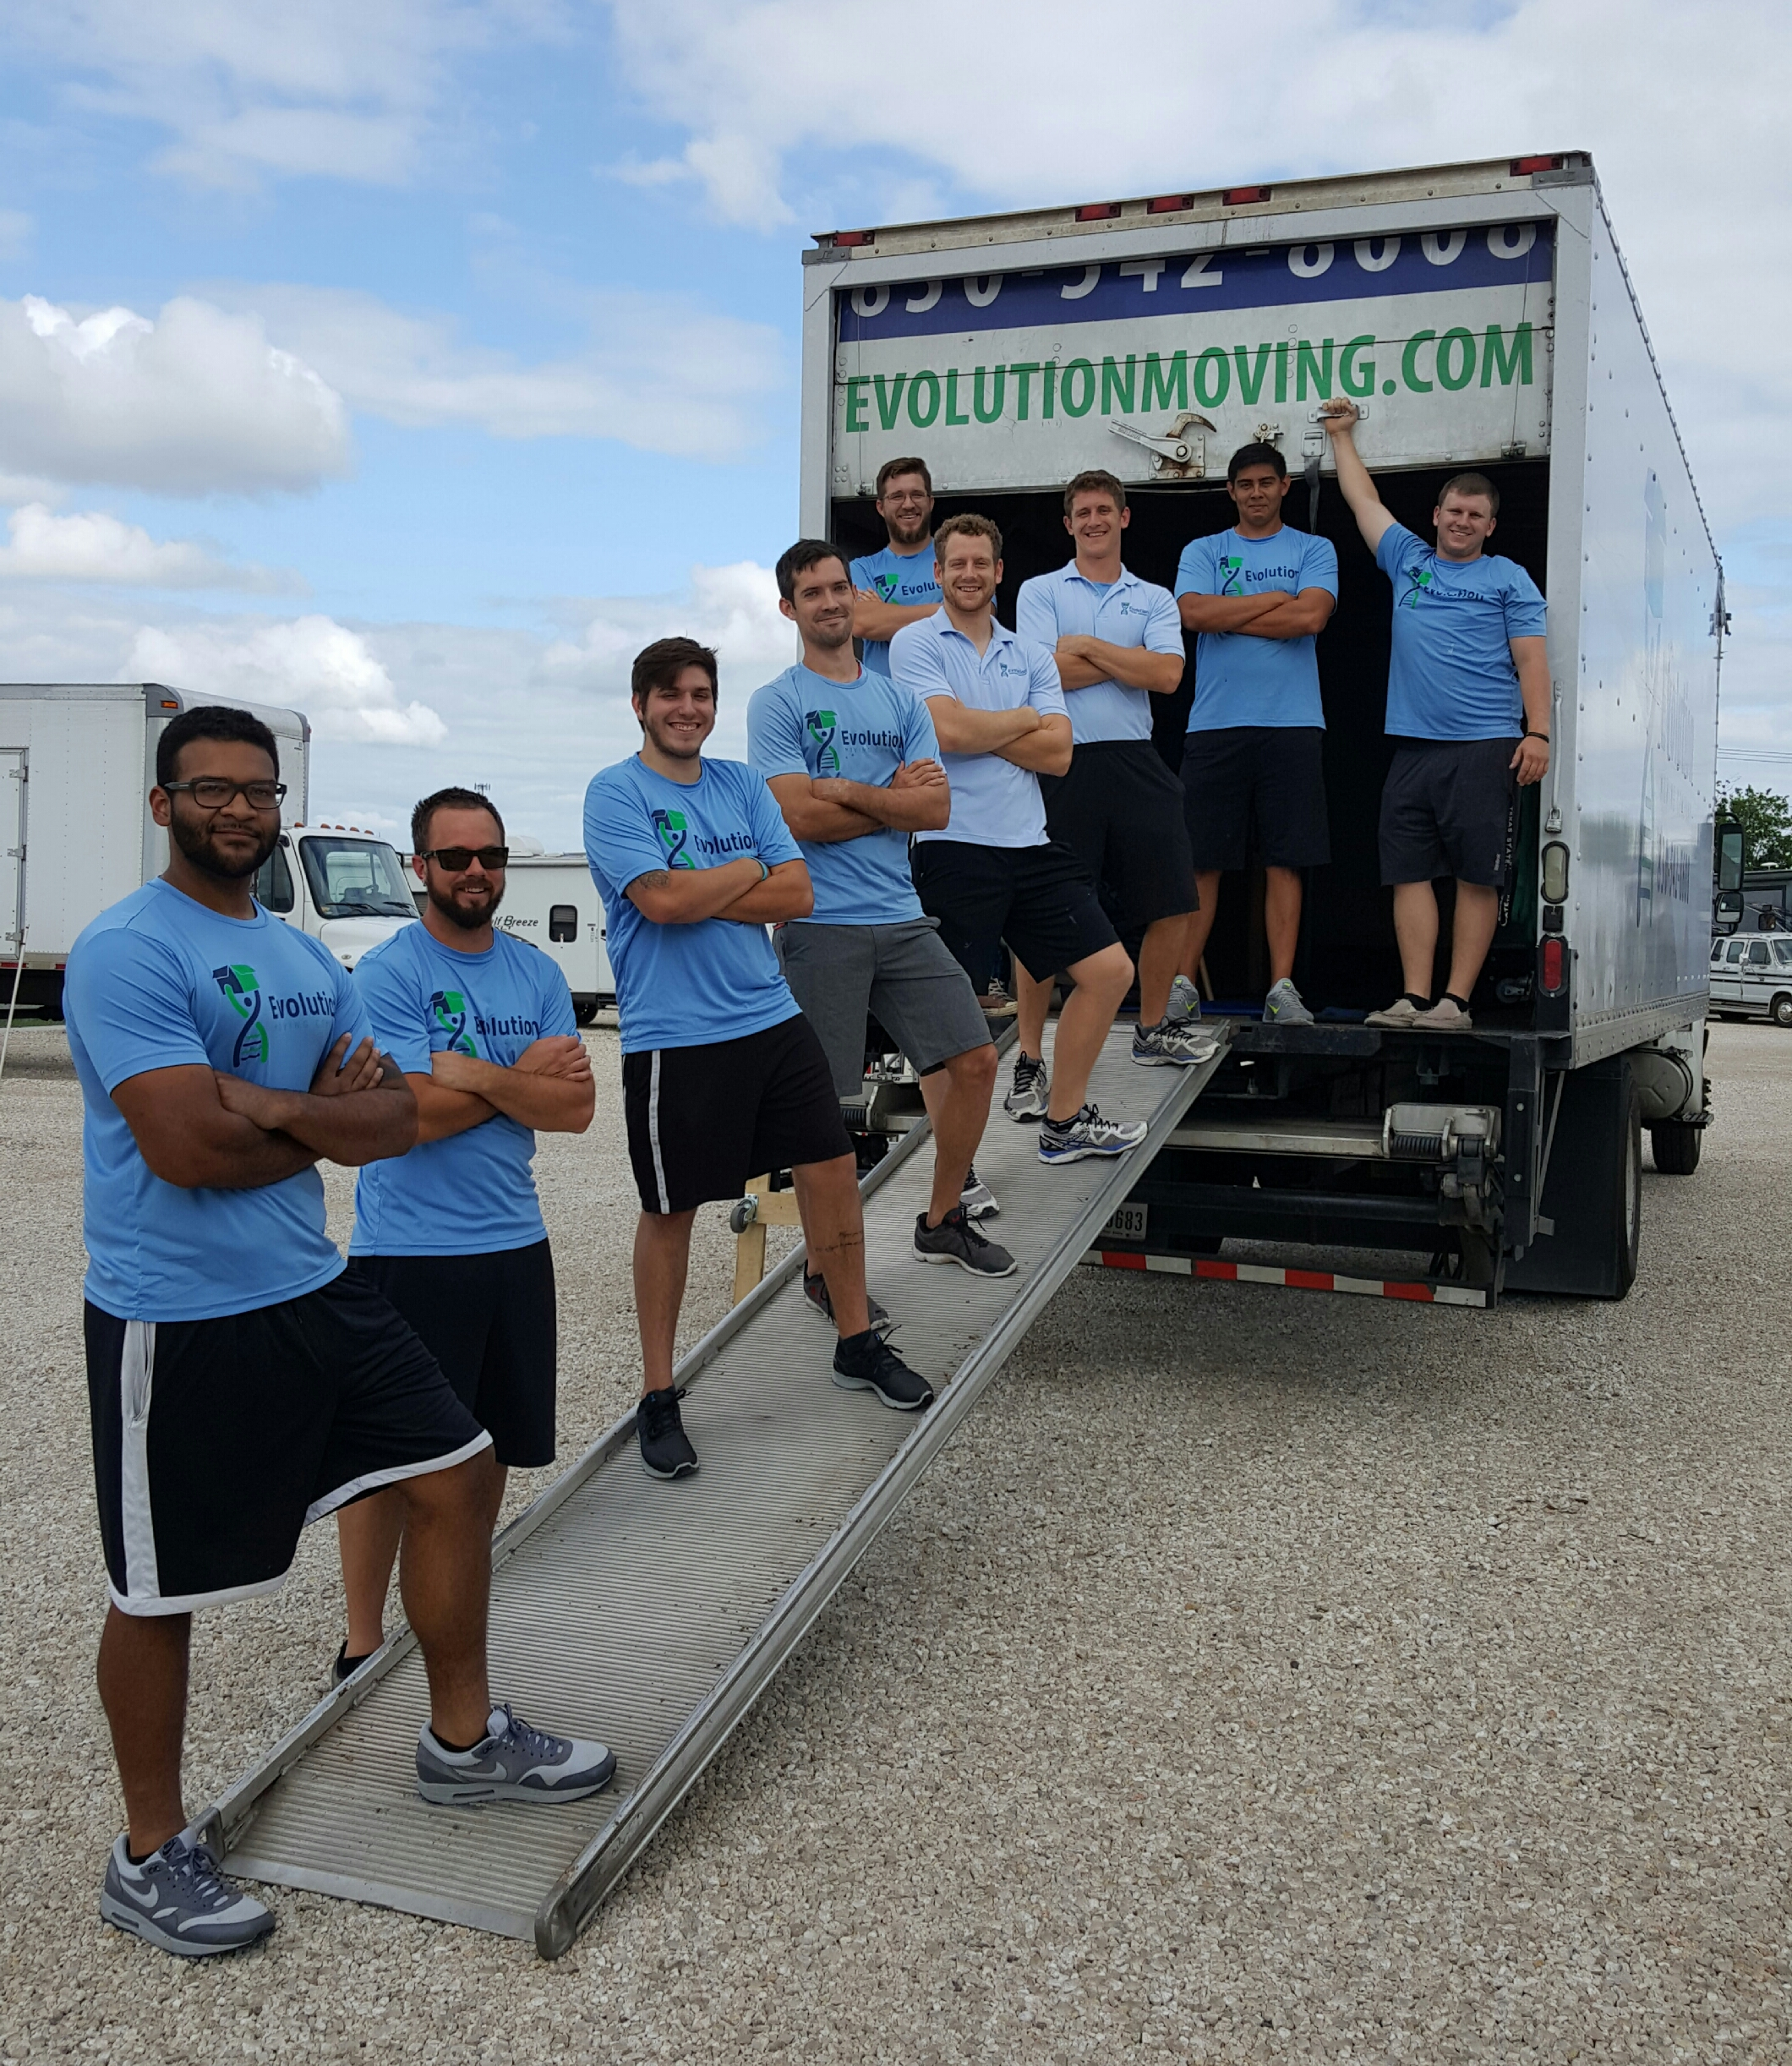 Evolution Moving Company